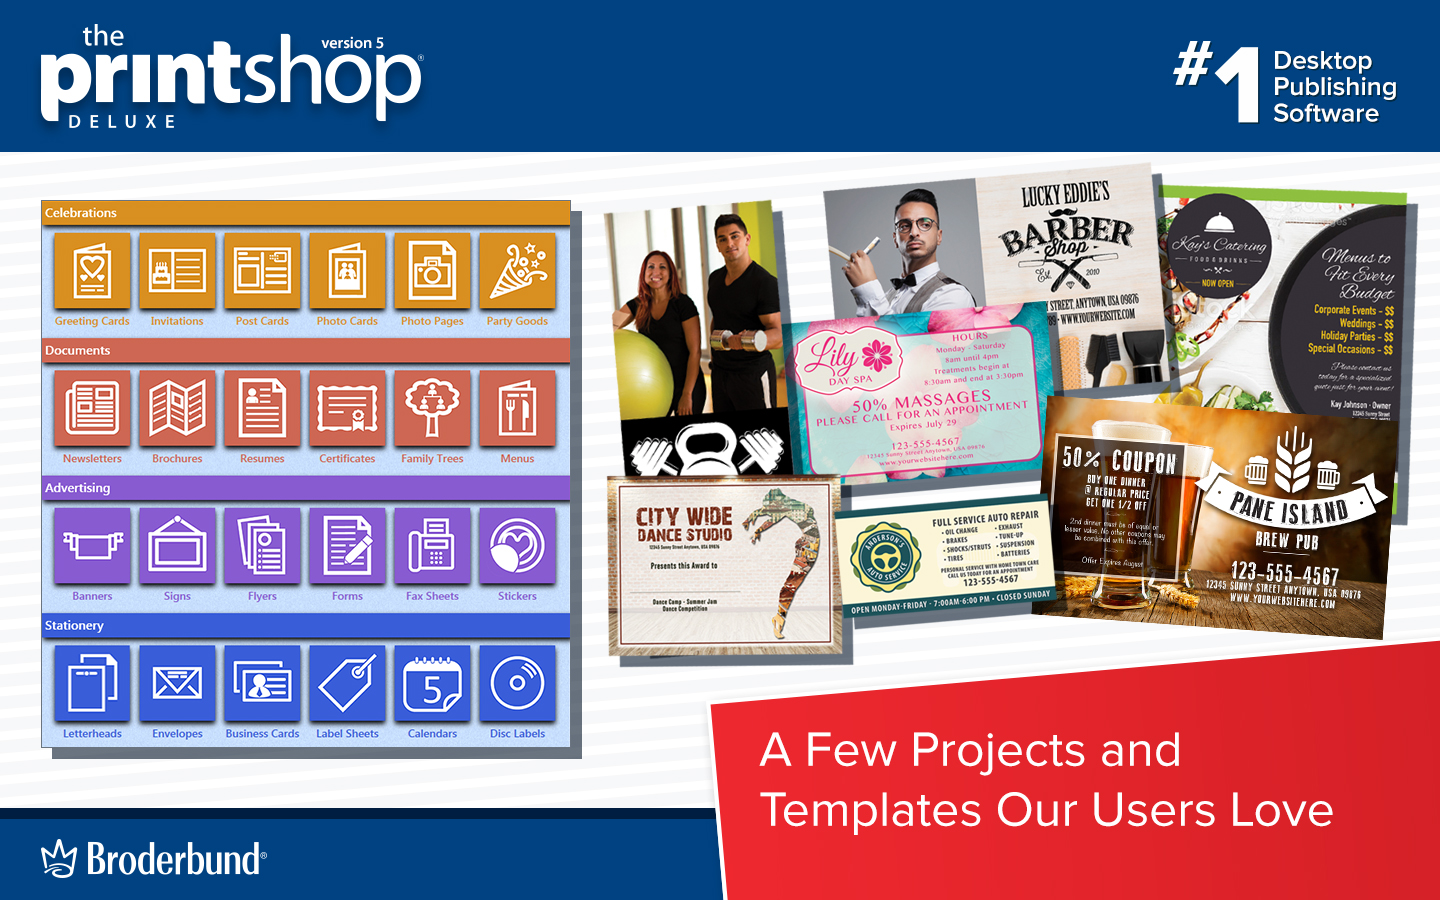 the print shop deluxe